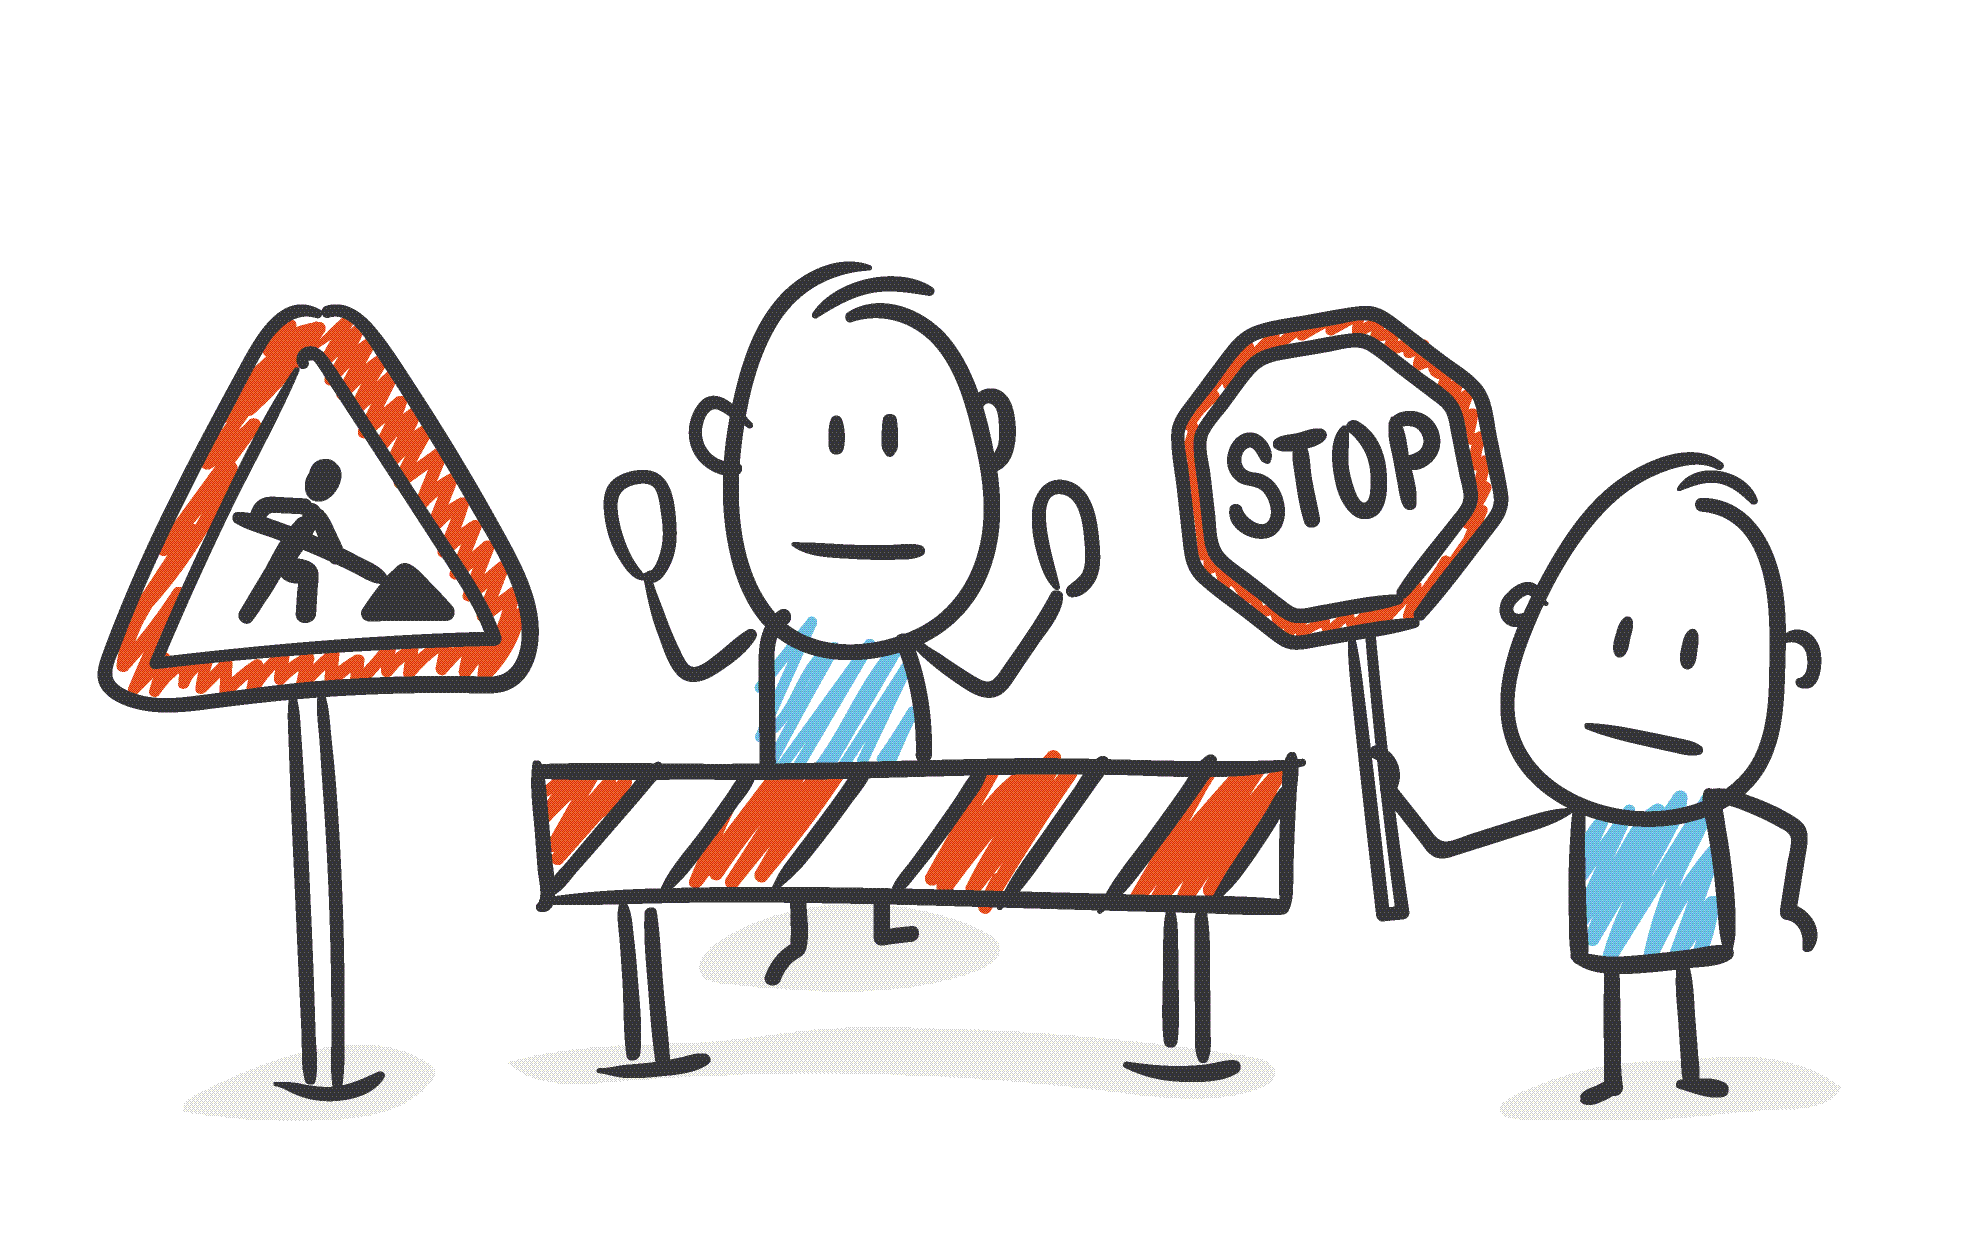 Stick figure workers at construction barrier offer caution hold up Stop sign